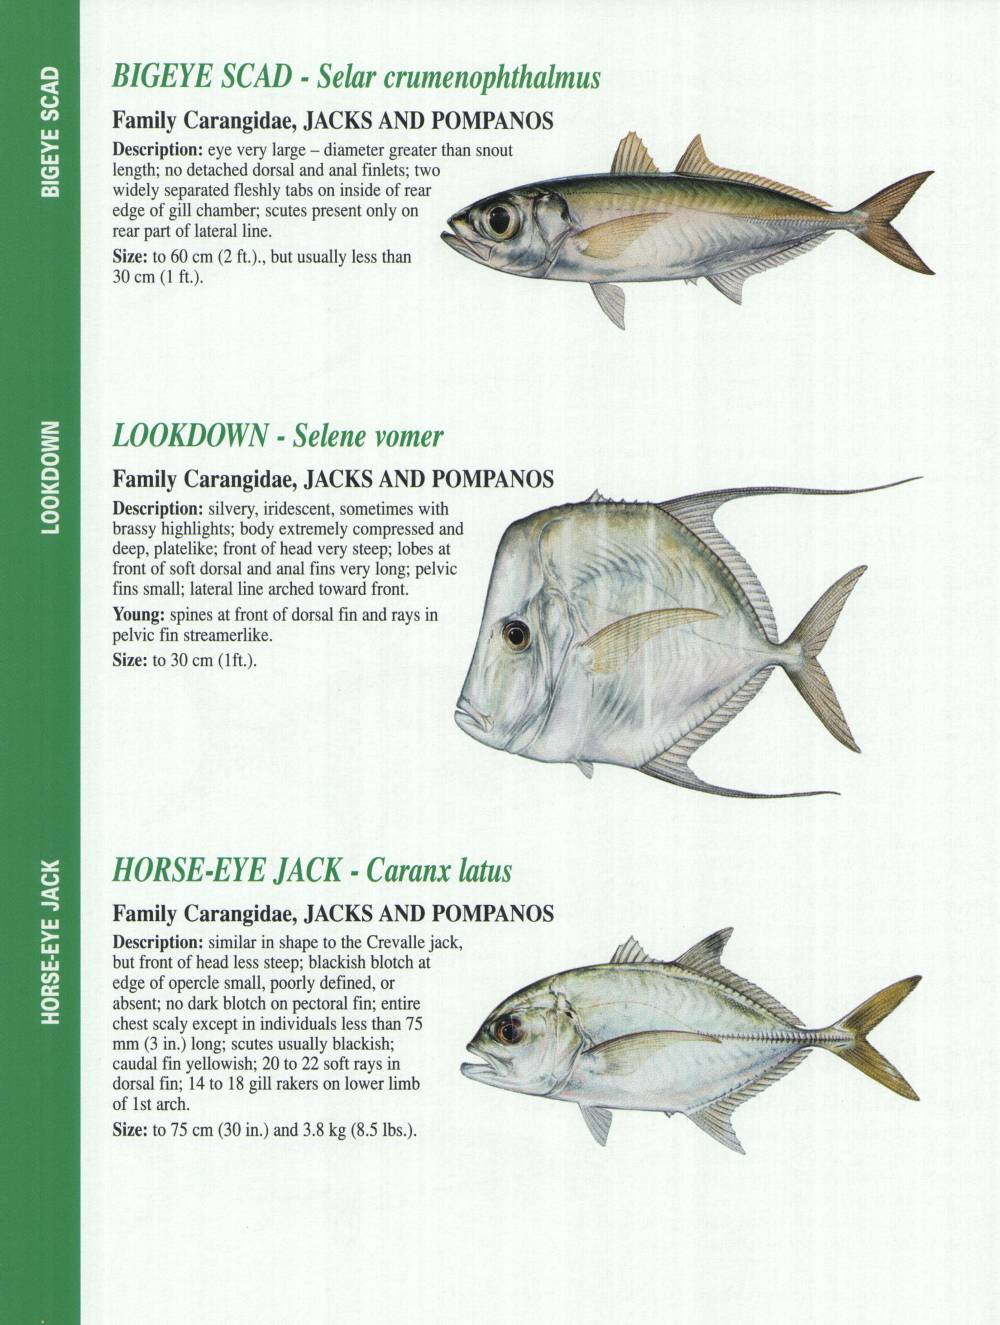 Florida gulf fish pictures to pin on pinterest pinsdaddy for Types of edible fish